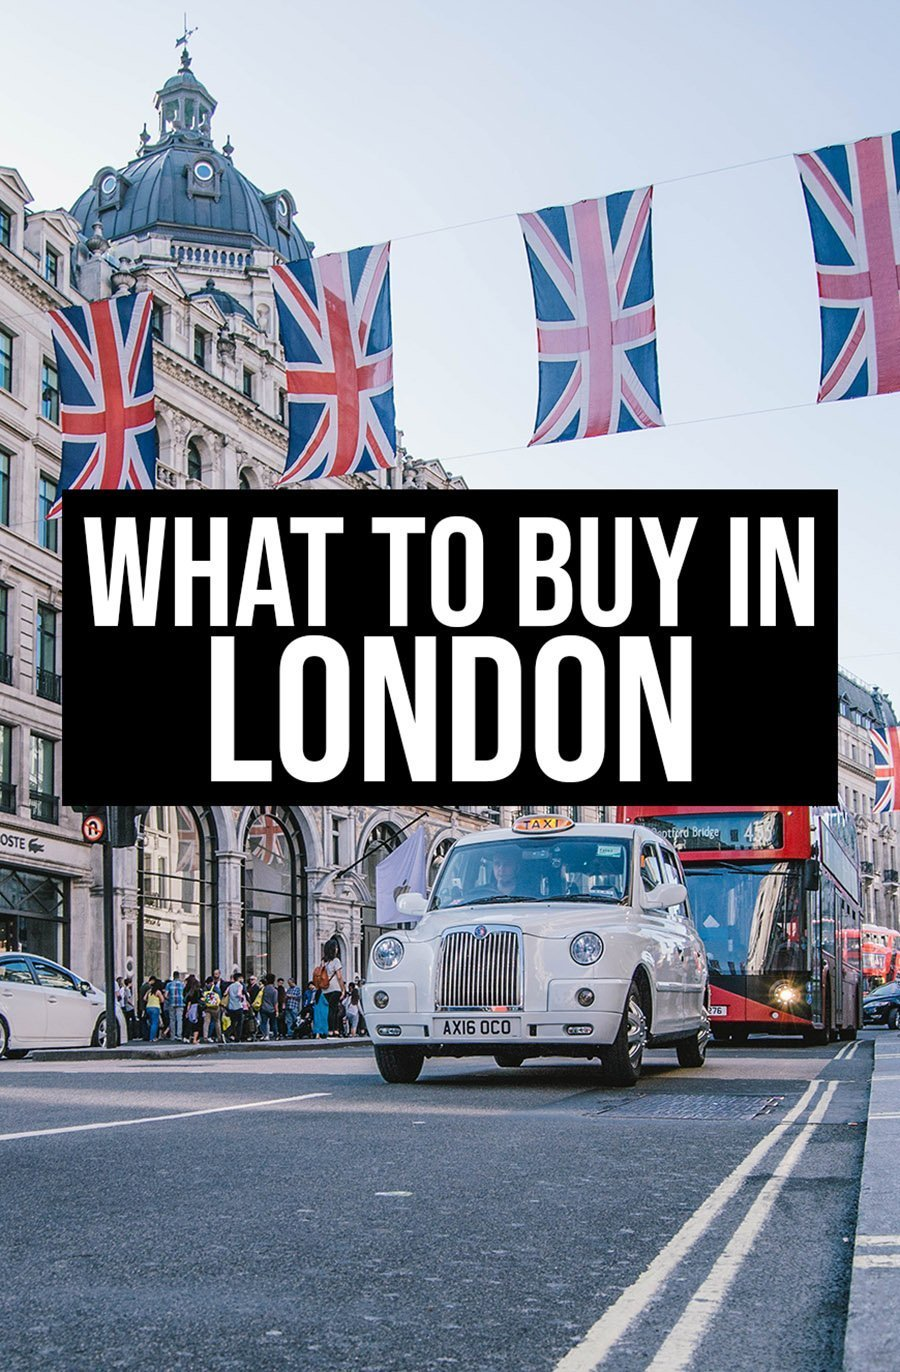 What to Buy in London | Souvenirs from London on the streets of the UK Capital